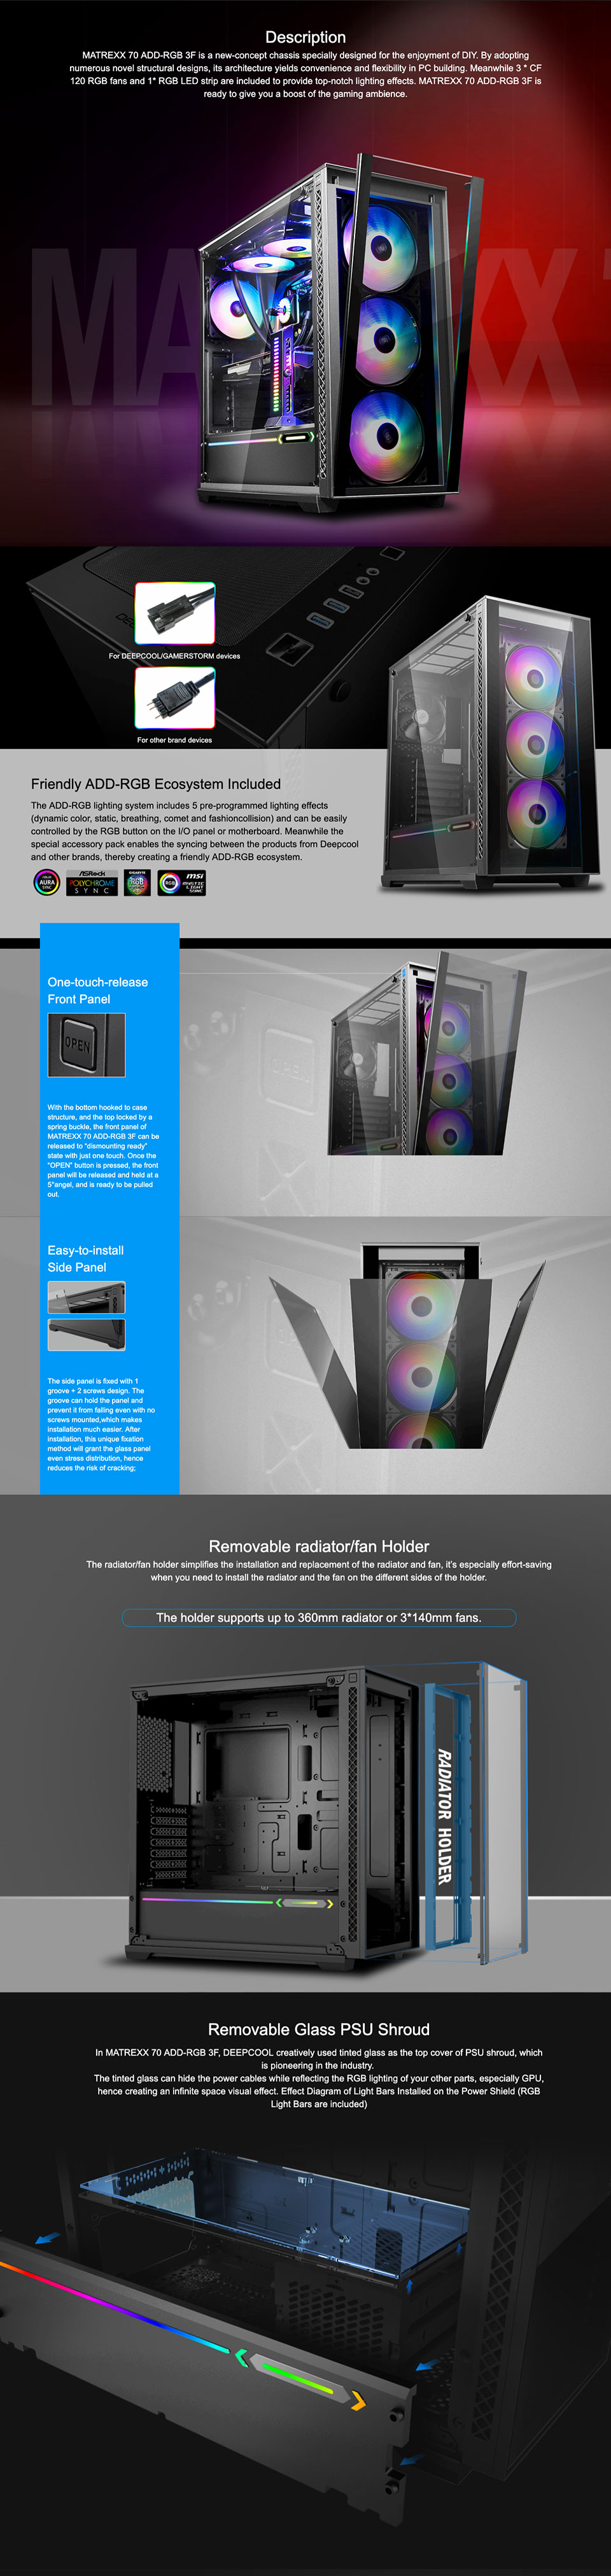 DeepCool Matrexx 70 ARGB 3F Tempered Glass PC Case with 3x Pre-installed RGB Fan